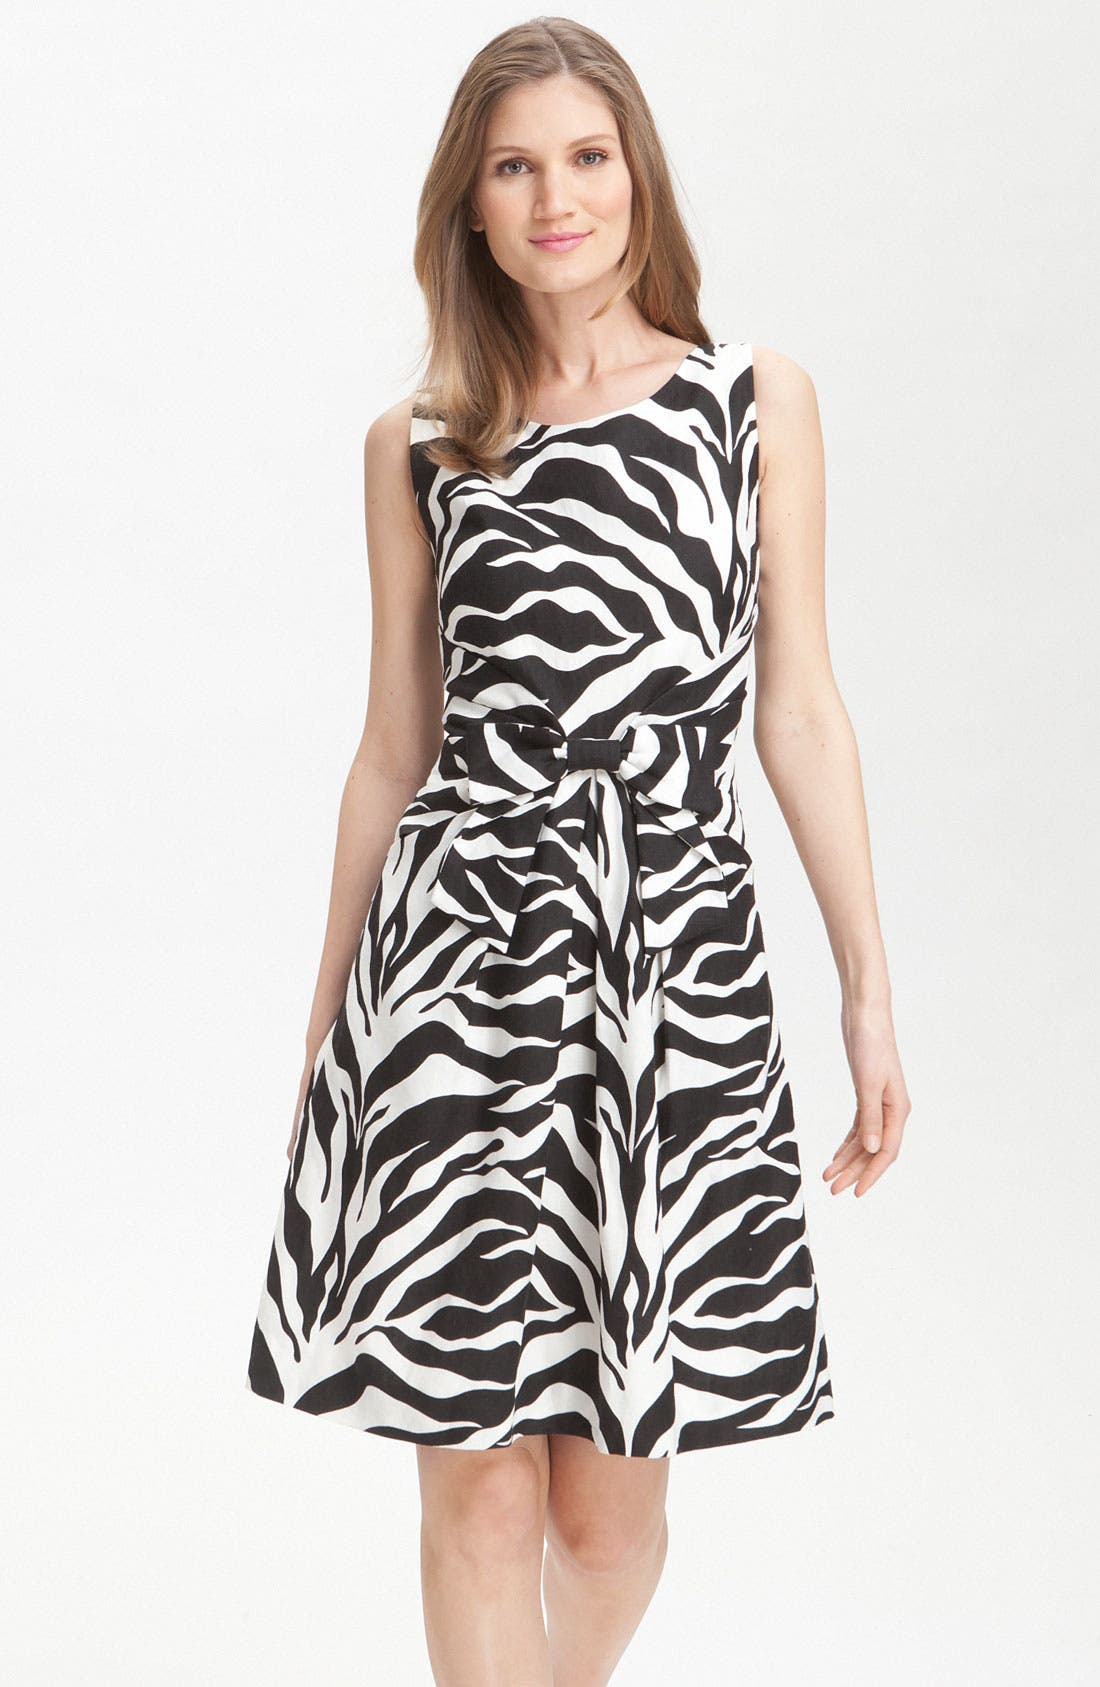 Alternate Image 1 Selected - kate spade new york 'jillian' animal print dress